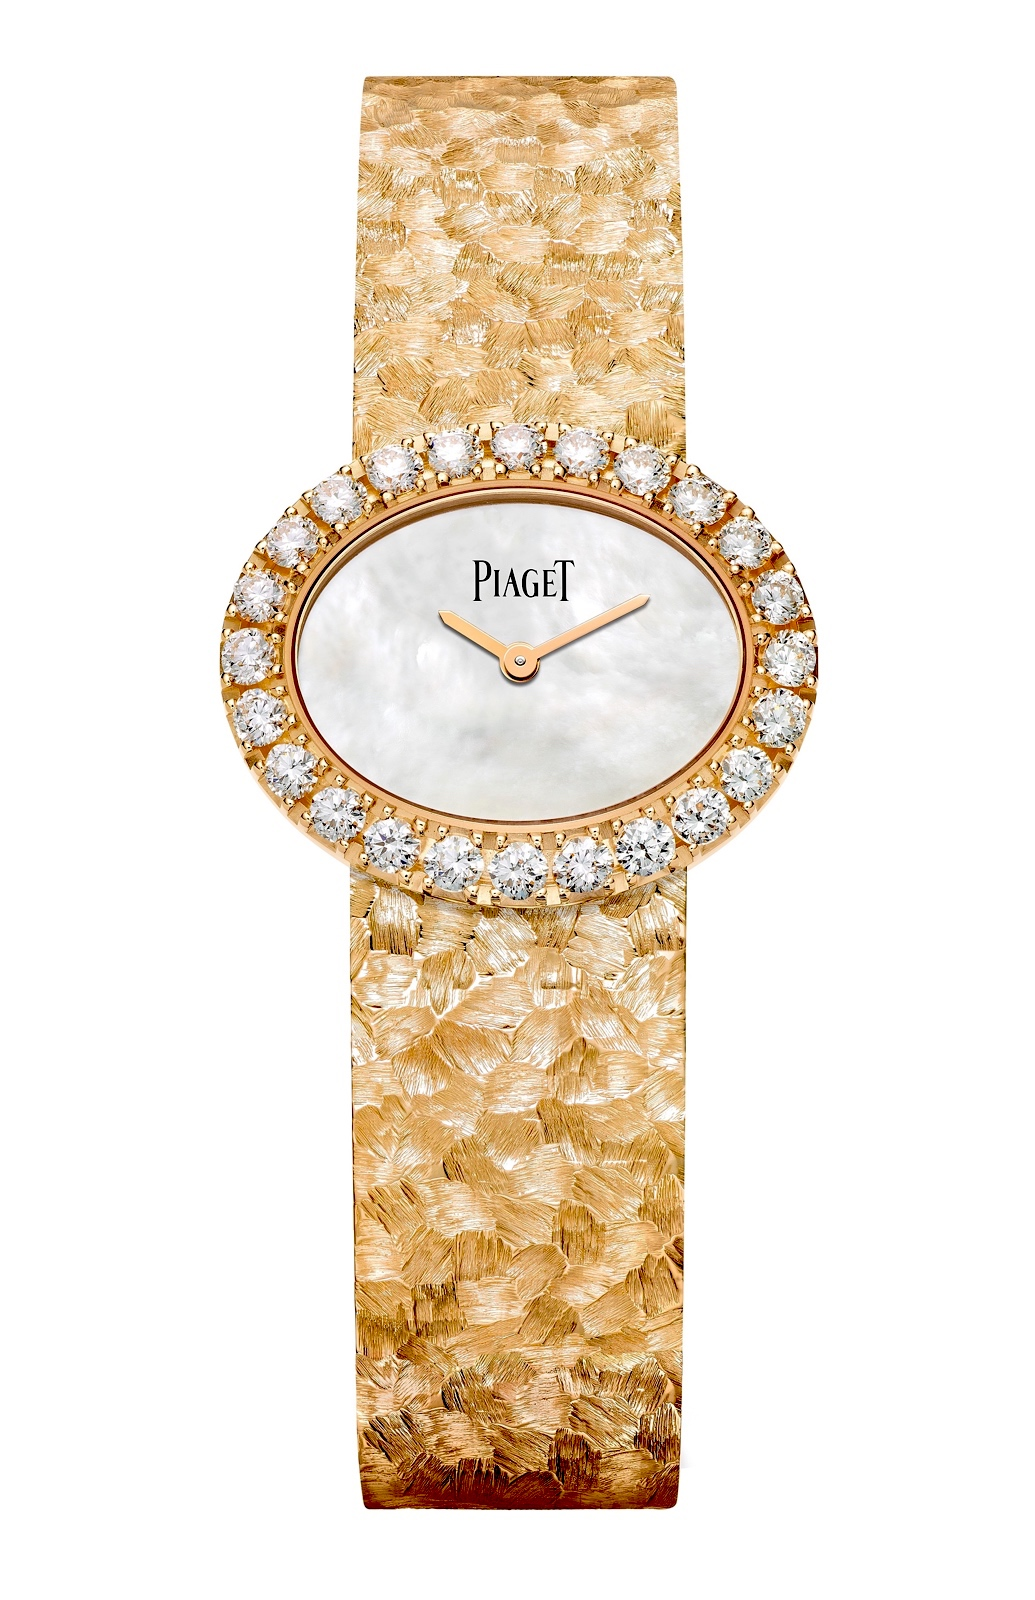 Piaget Extremely Lady - front